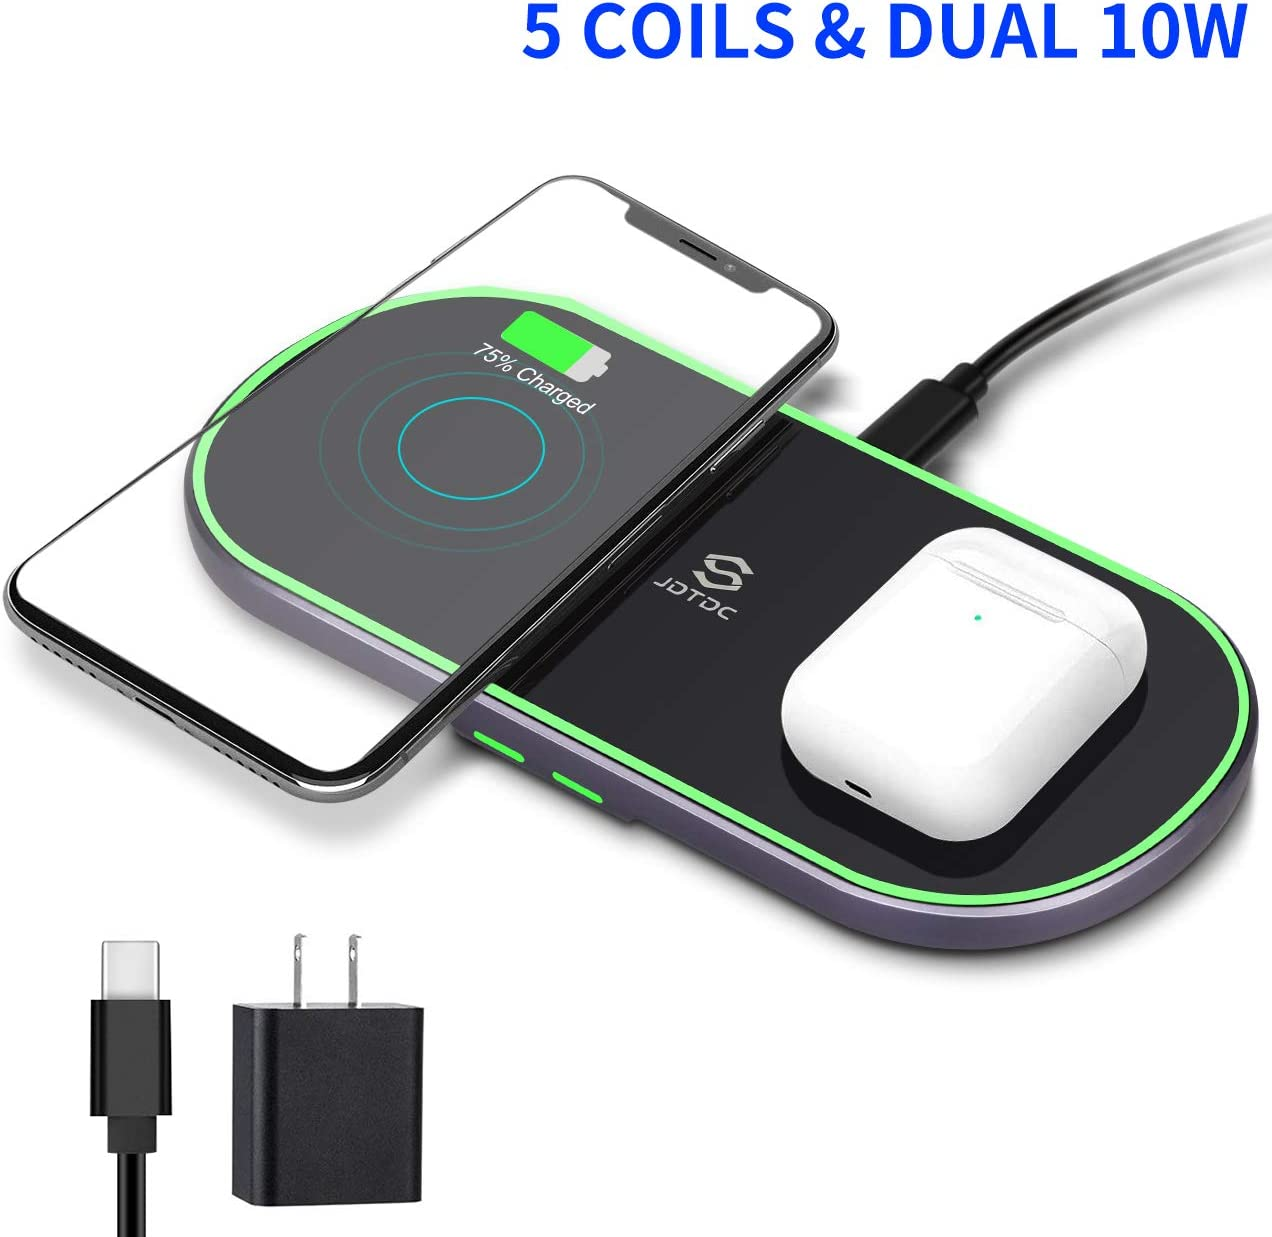 QC Adapter Included Samsung Galaxy Note 10//Note 10+//S10 AirPods 2//Pro and More Dual Wireless Charger 5 Coils Qi-Certified Wireless Charging Stand for iPhone 11//11 Pro//11 Pro Max//XS Max//X